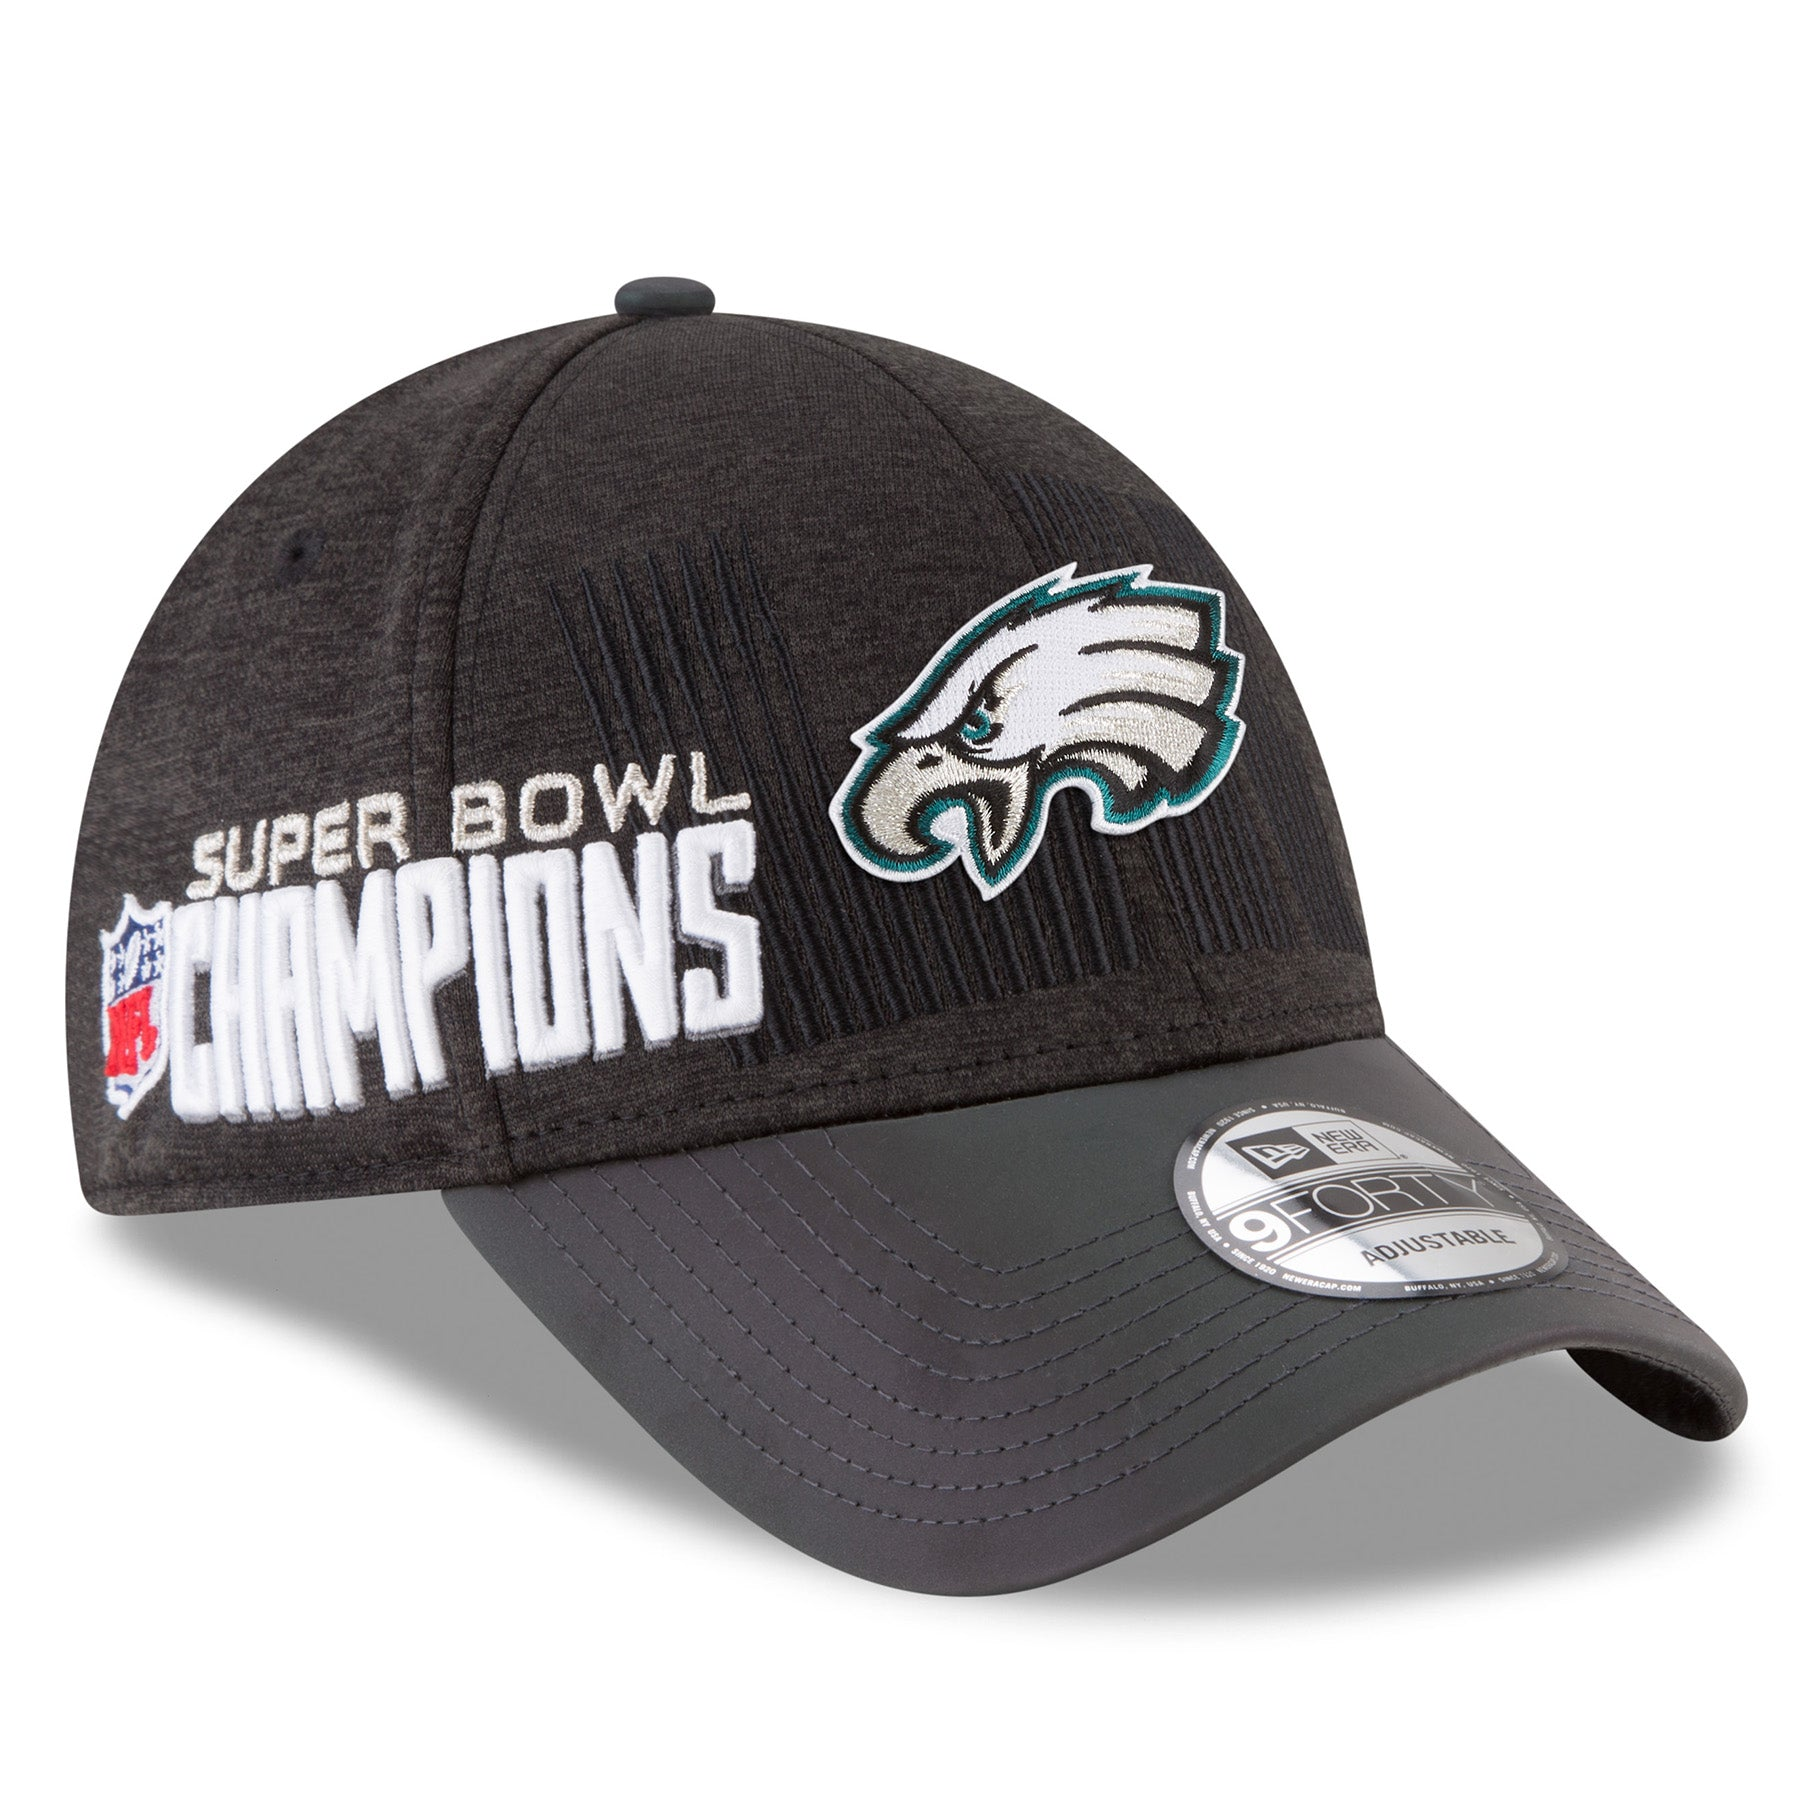 The Official Philadelphia Eagles Super Bowl Champions Locker Room 9forty Dad Hat Has A Structured Crown